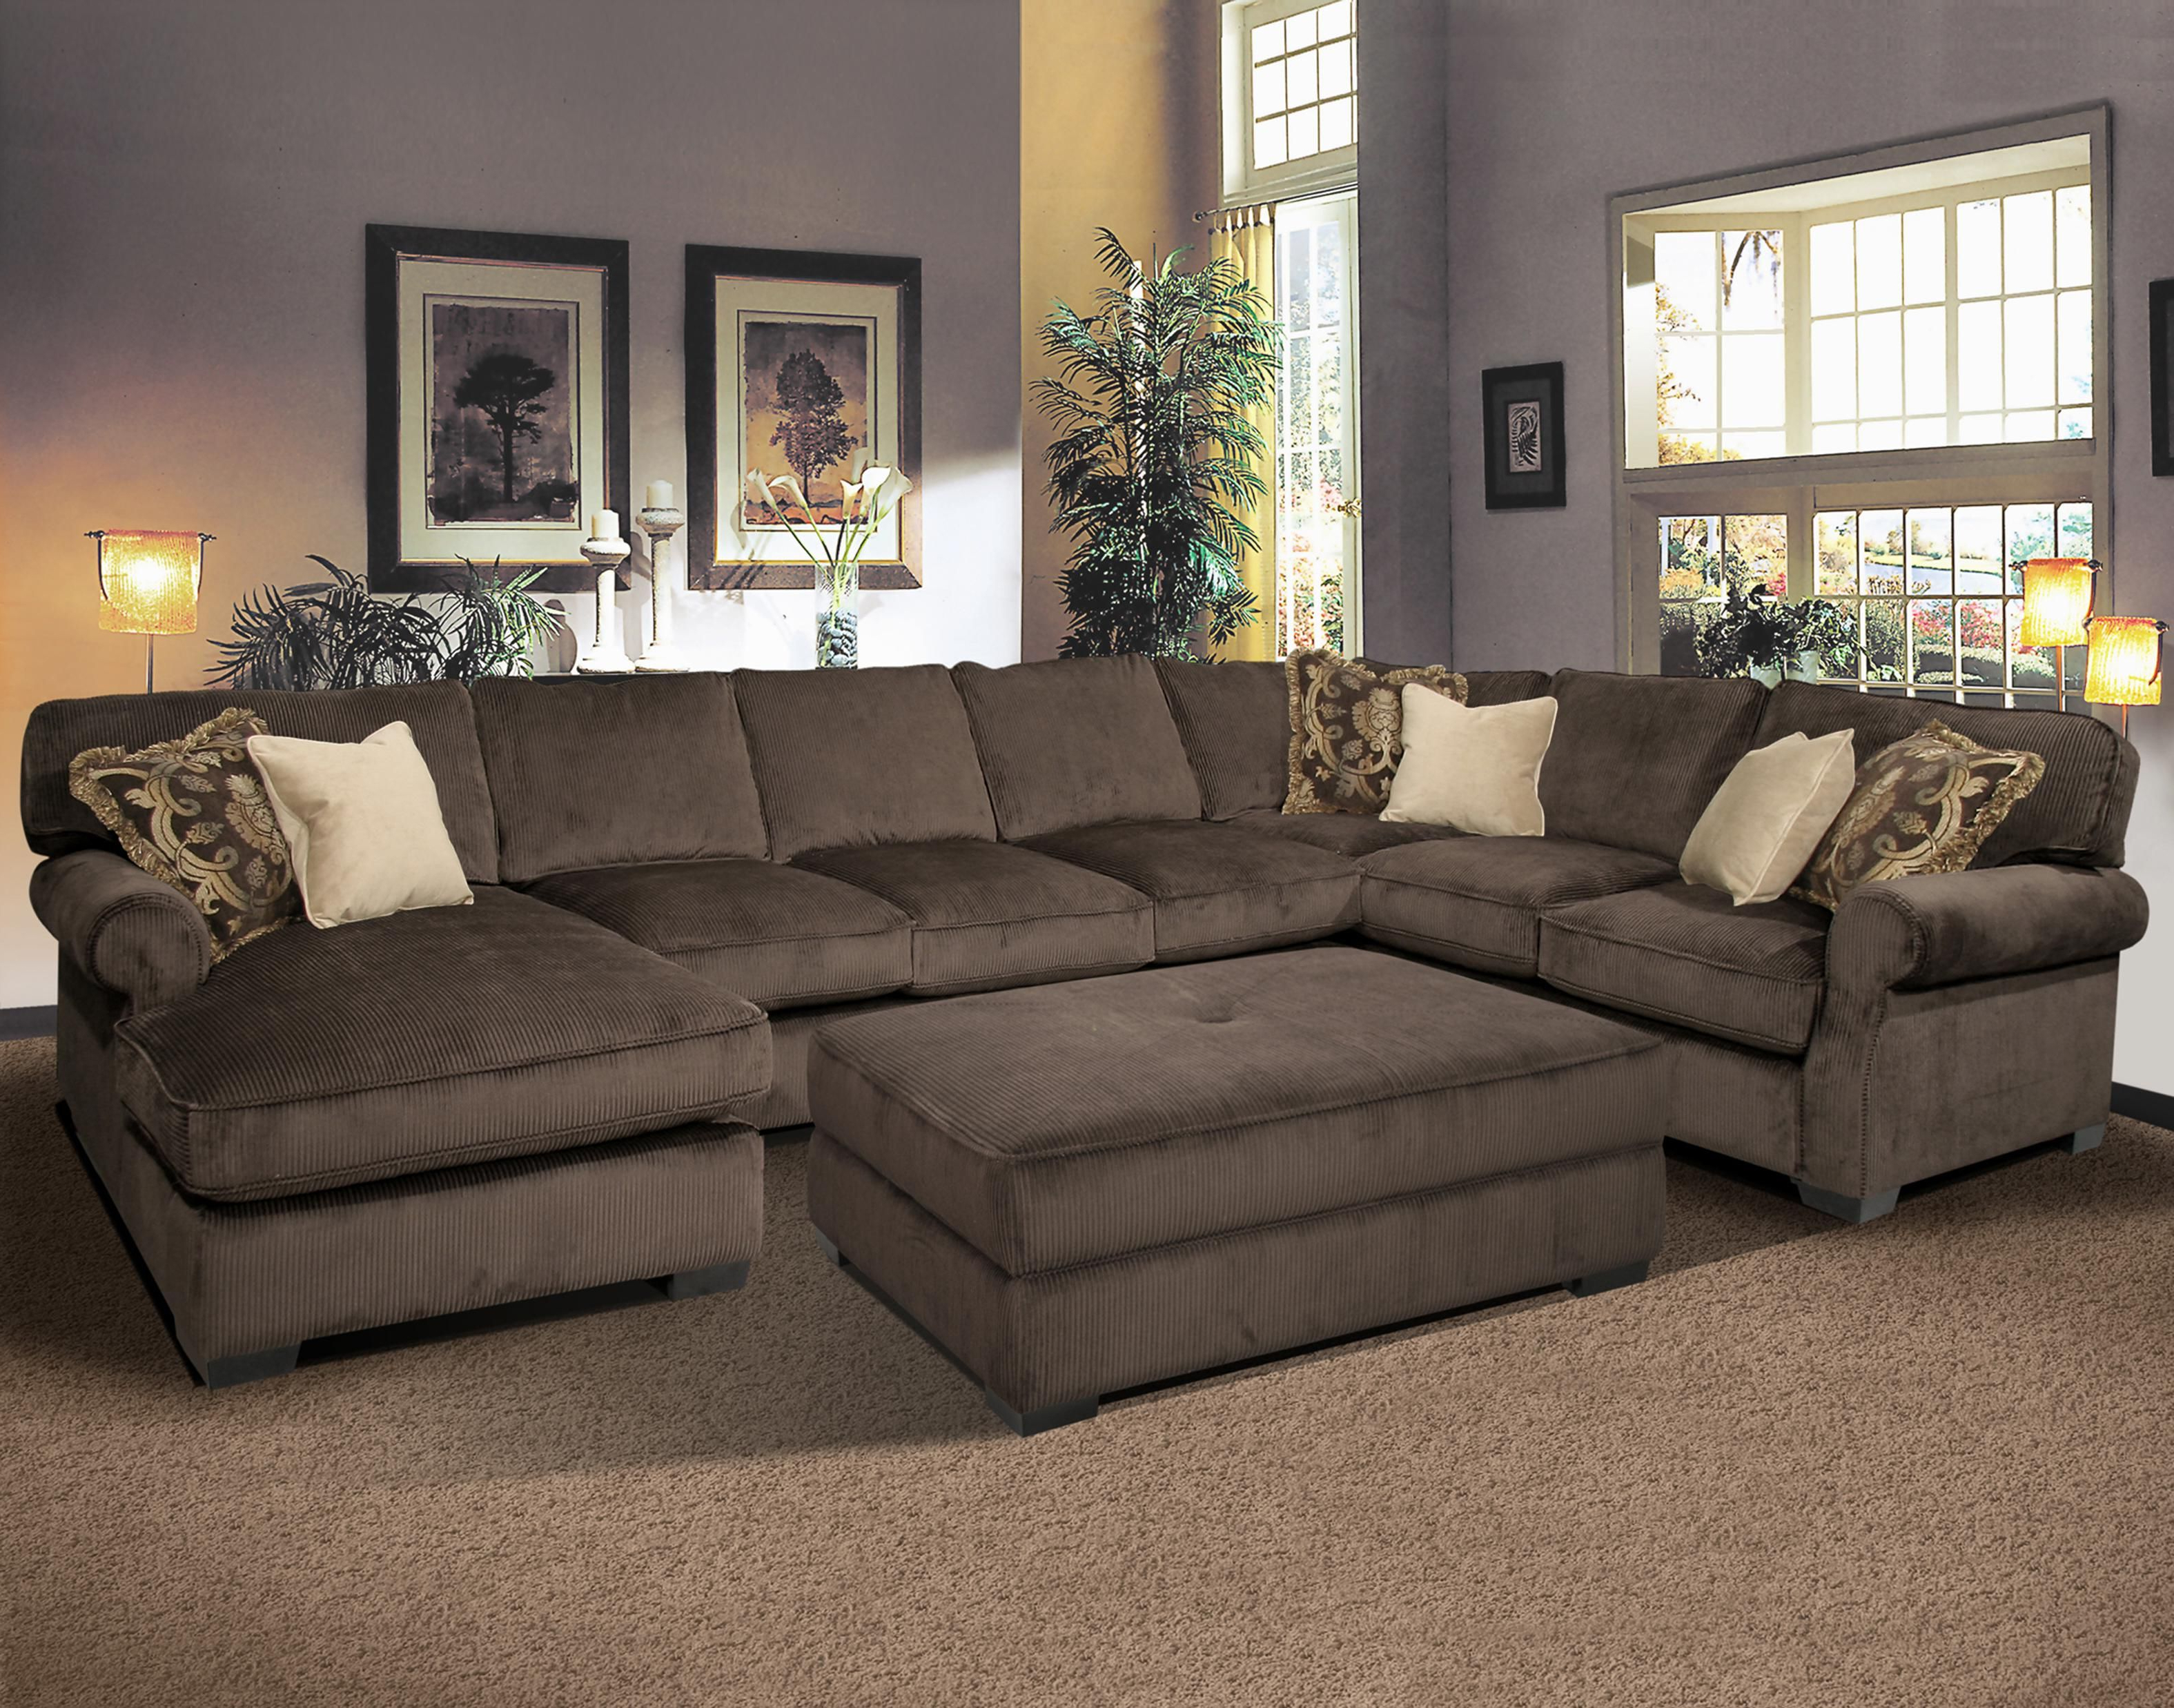 Gordon 3 Piece Sectionals With Raf Chaise Regarding 2019 Big And Comfy Grand Island Large, 7 Seat Sectional Sofa With Right (View 8 of 20)